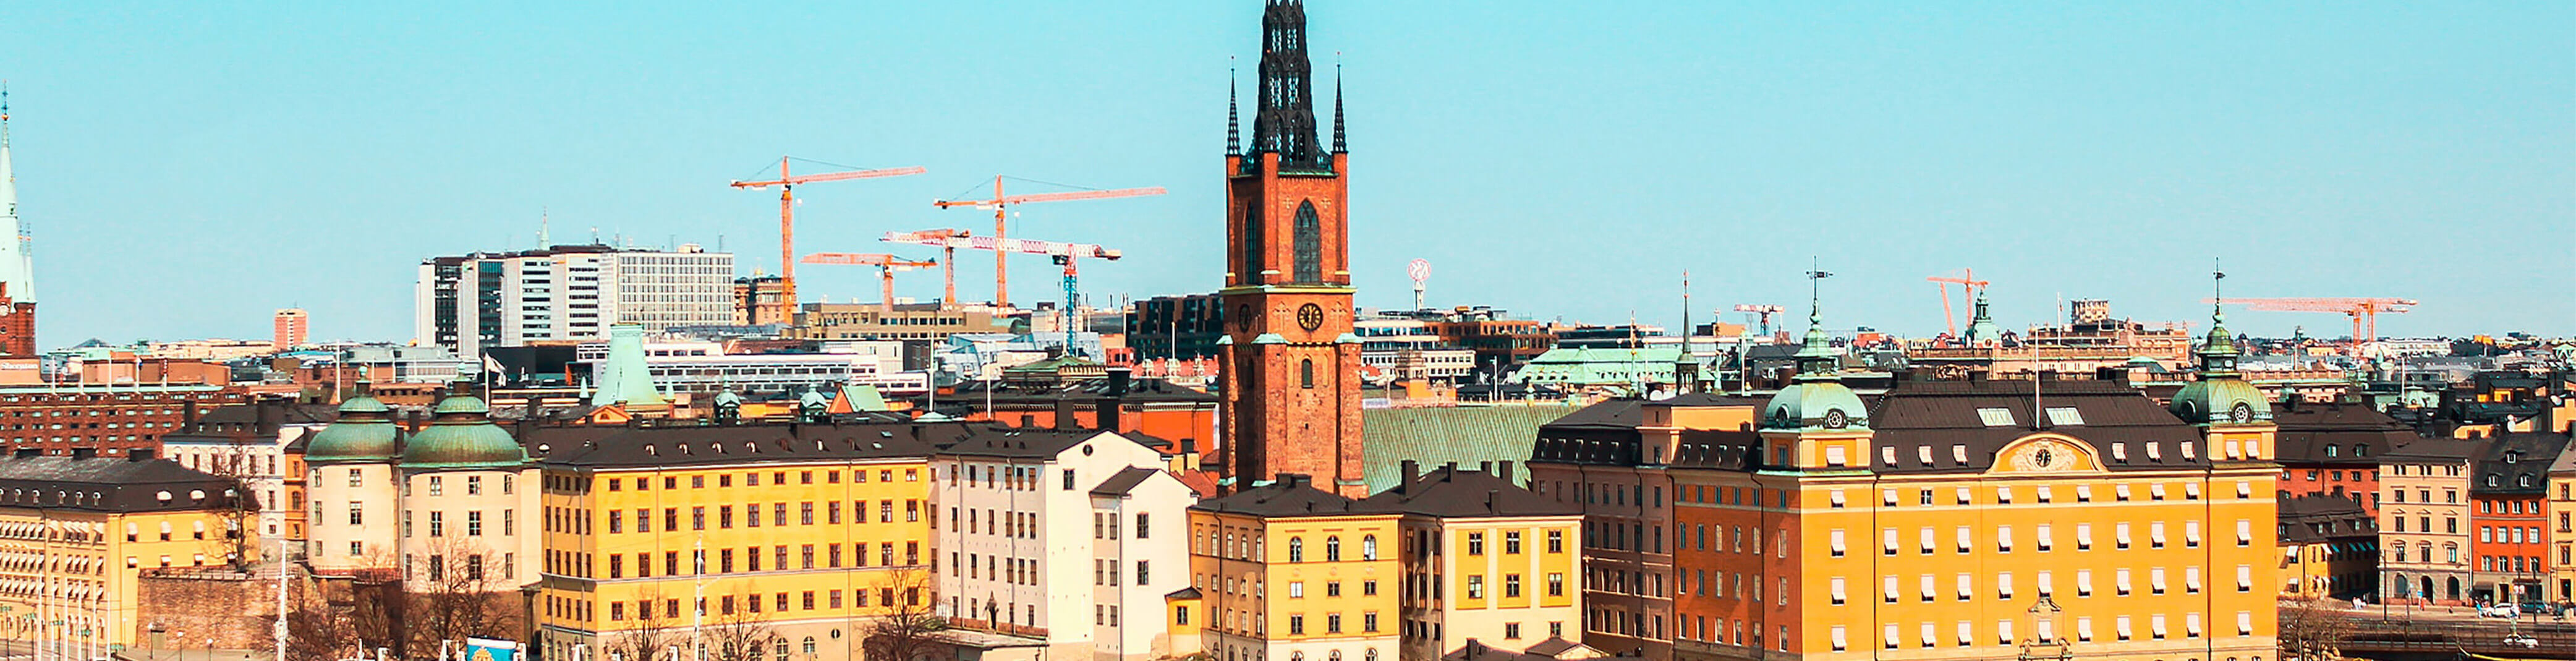 Online Training Courses In Stockholm